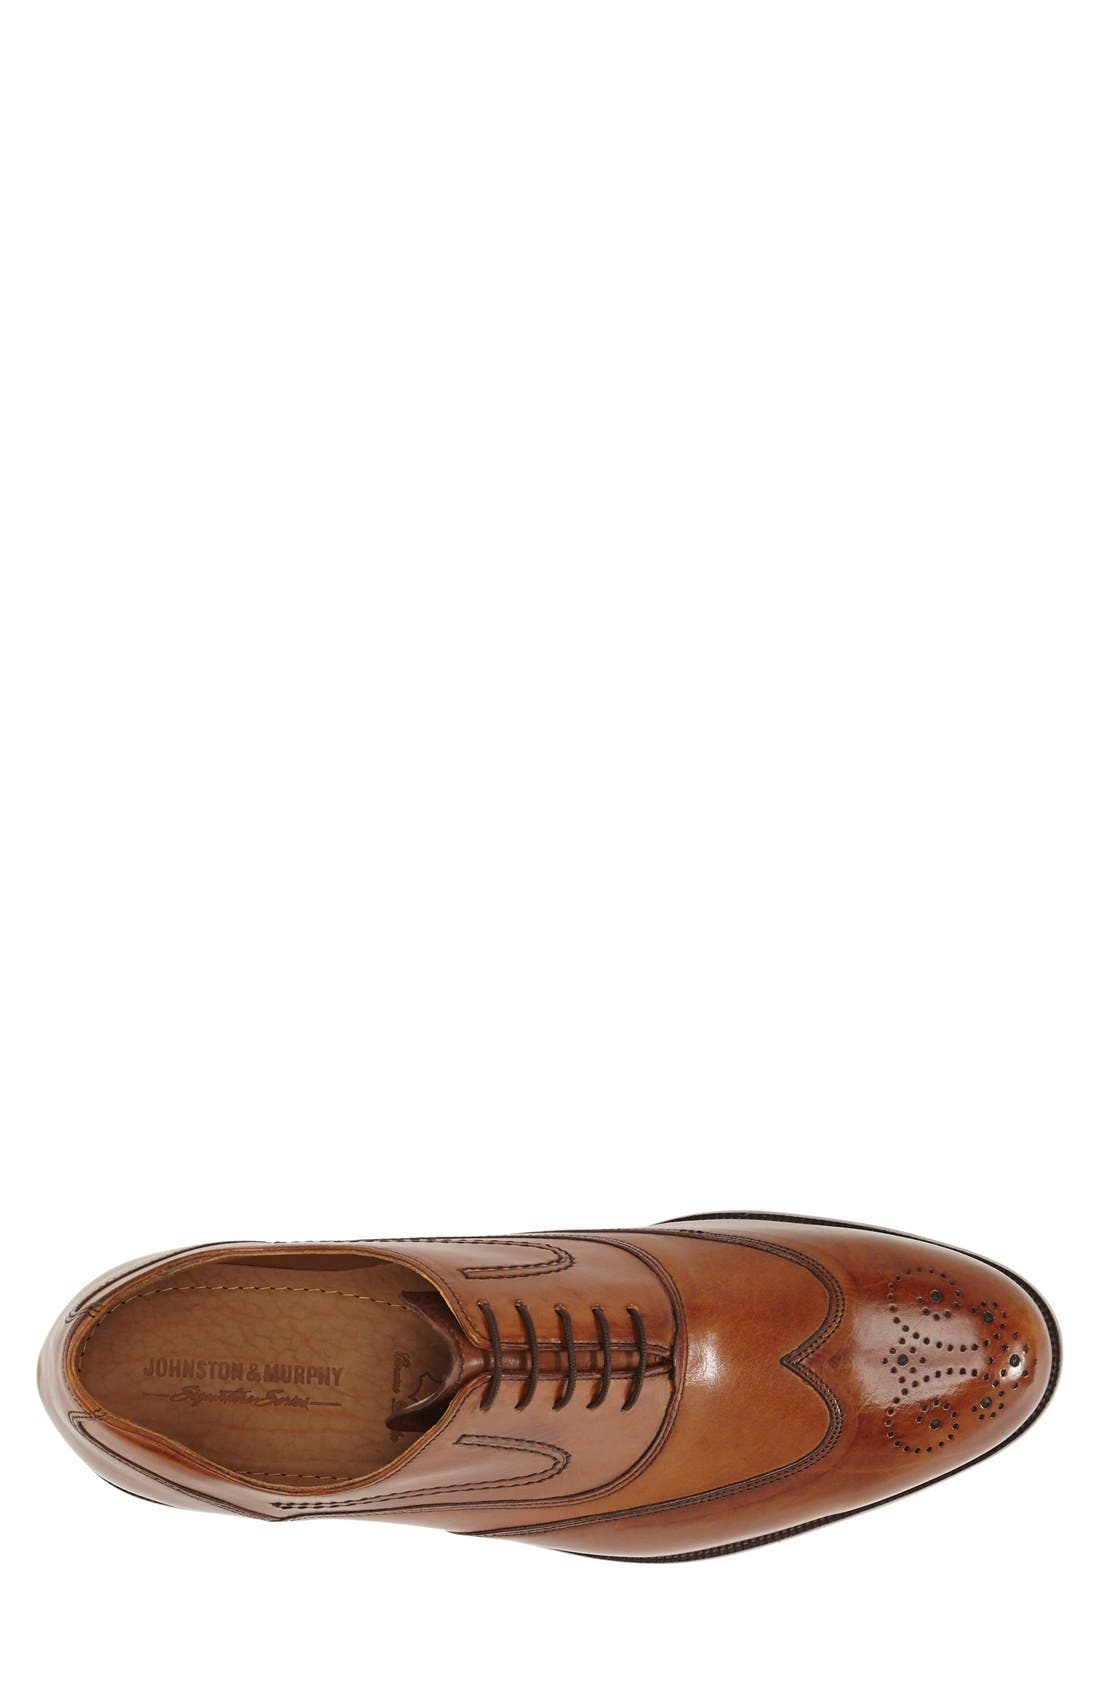 Alternate Image 3  - Johnston & Murphy 'Stratton' Wingtip Oxford (Men)